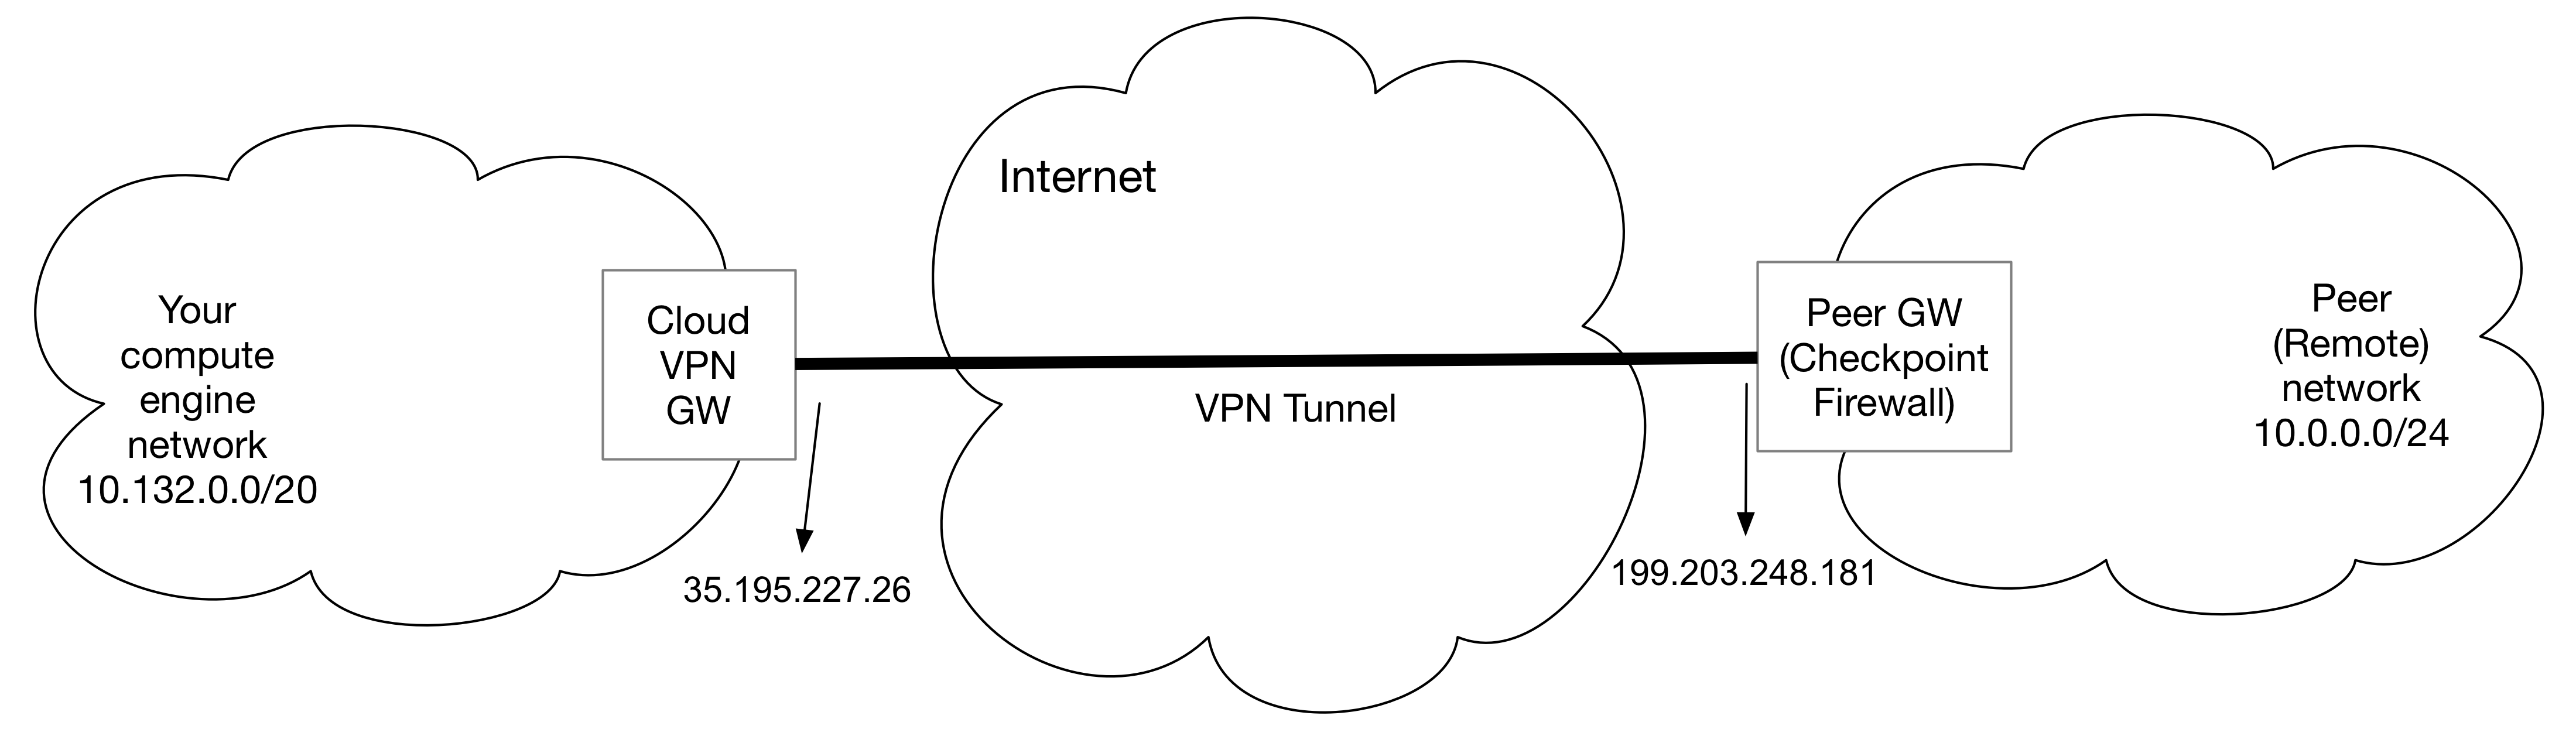 How to set up vpn between check point security gateway and cloud topology pooptronica Gallery